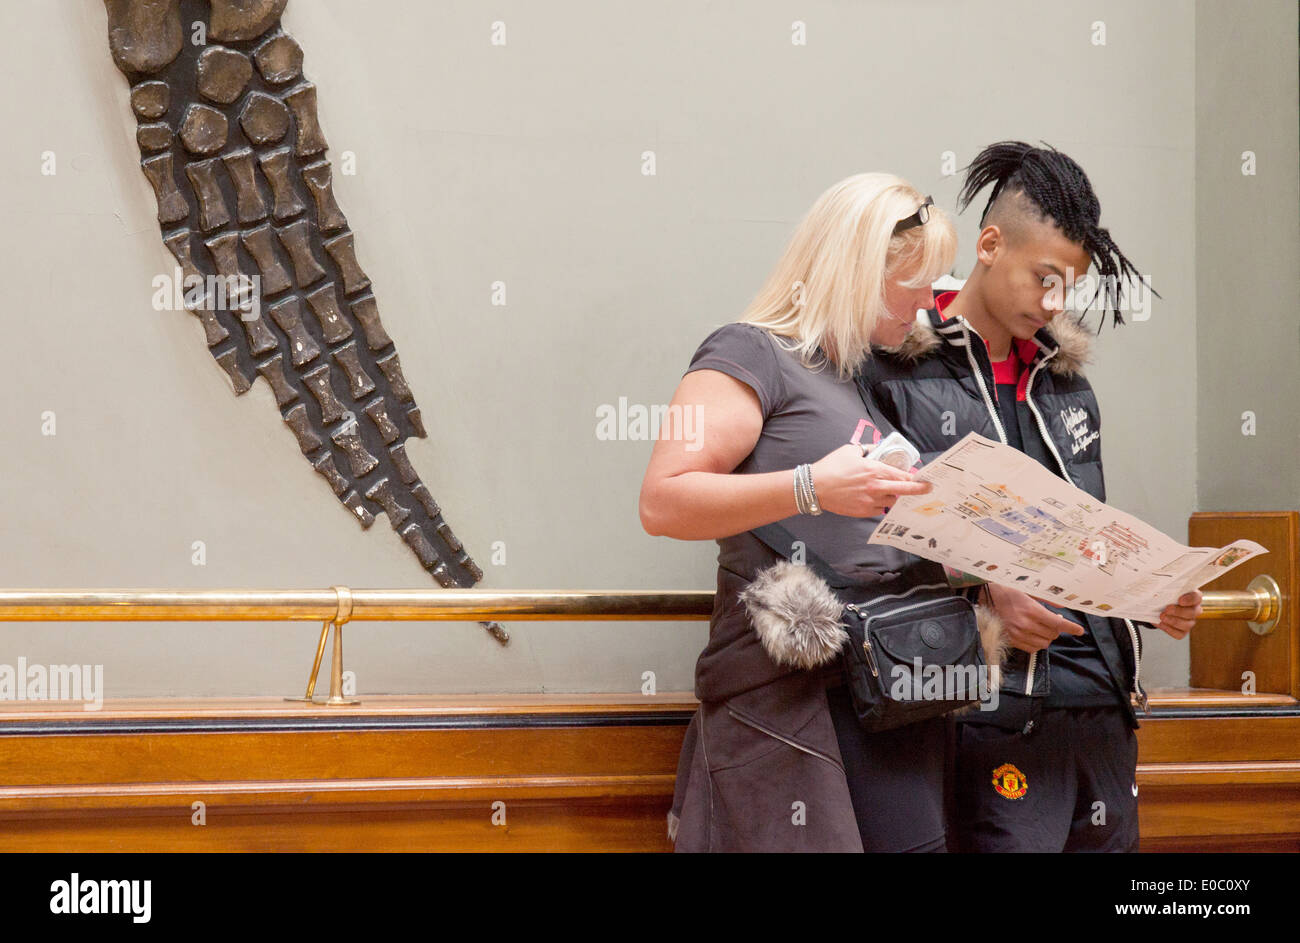 Young couple at the Natural HIstory Museum, with dinosaur bones, UK - Stock Image